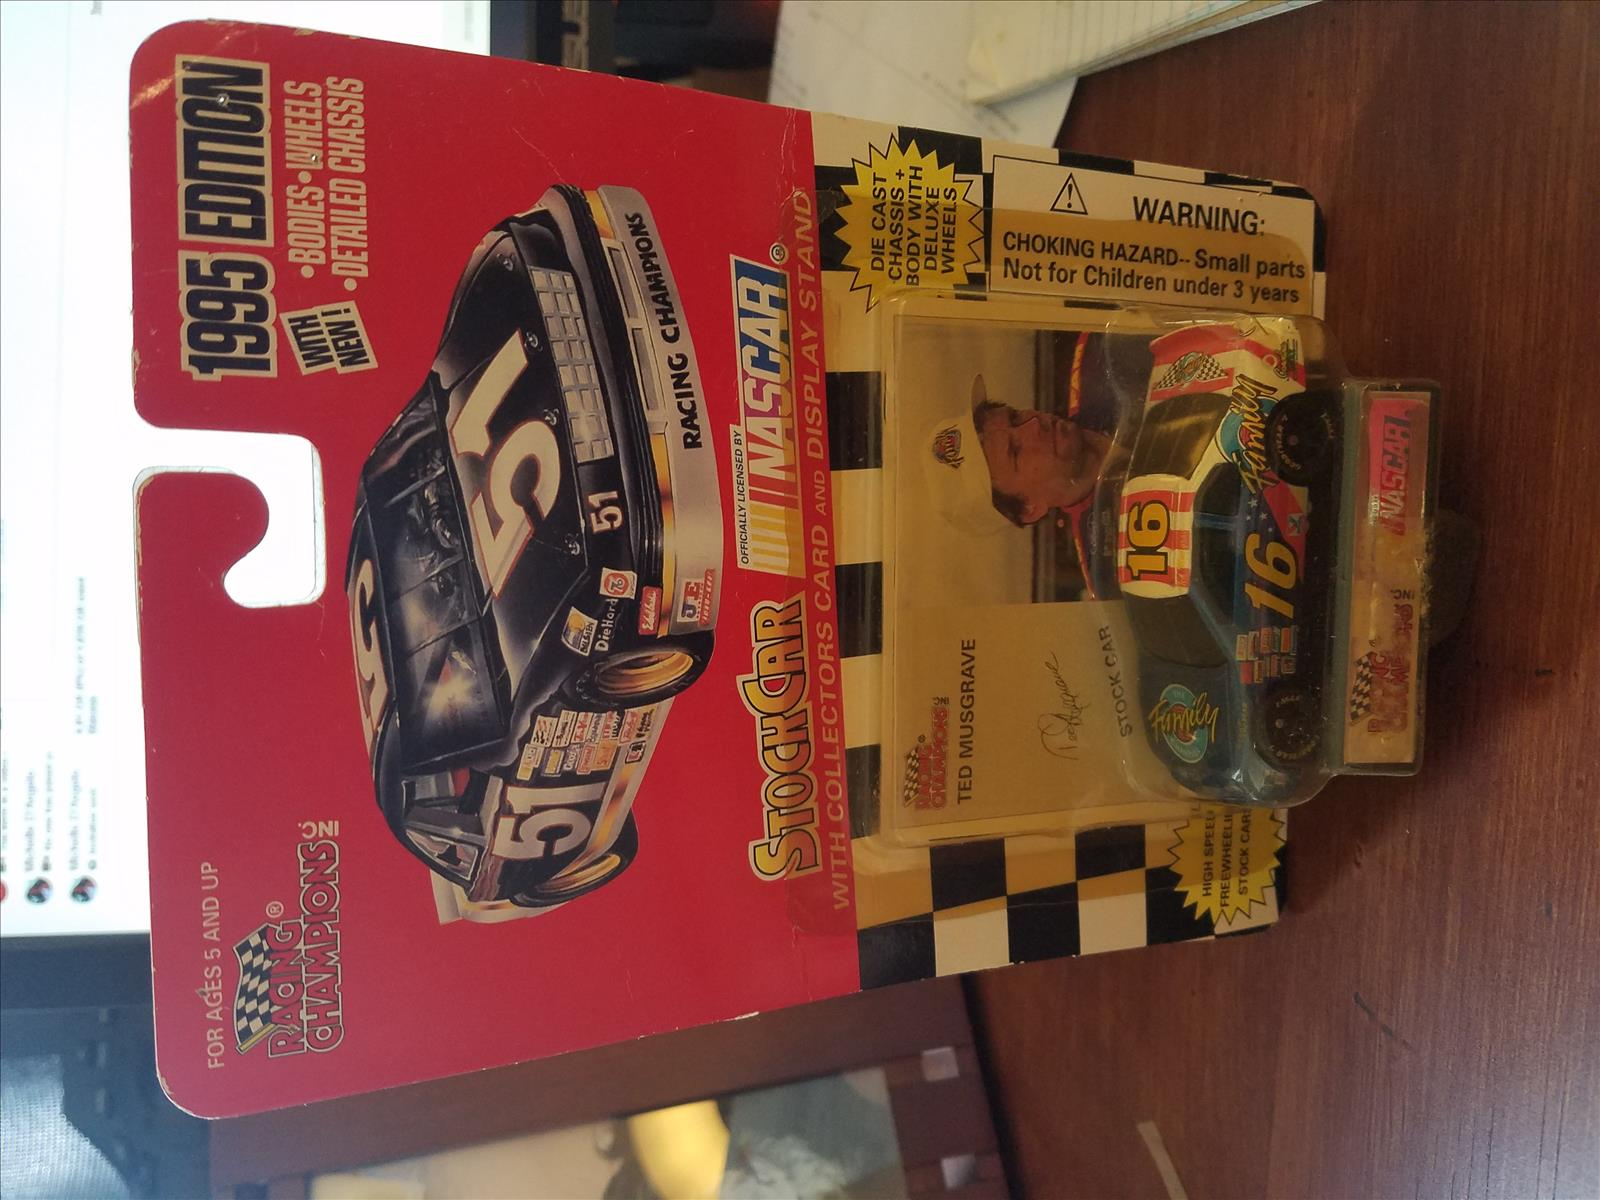 1995 Ted Musgrave NASCAR Diecast 16 Family Channel CWC 1:64 Racing Champions 1995 Edition 1